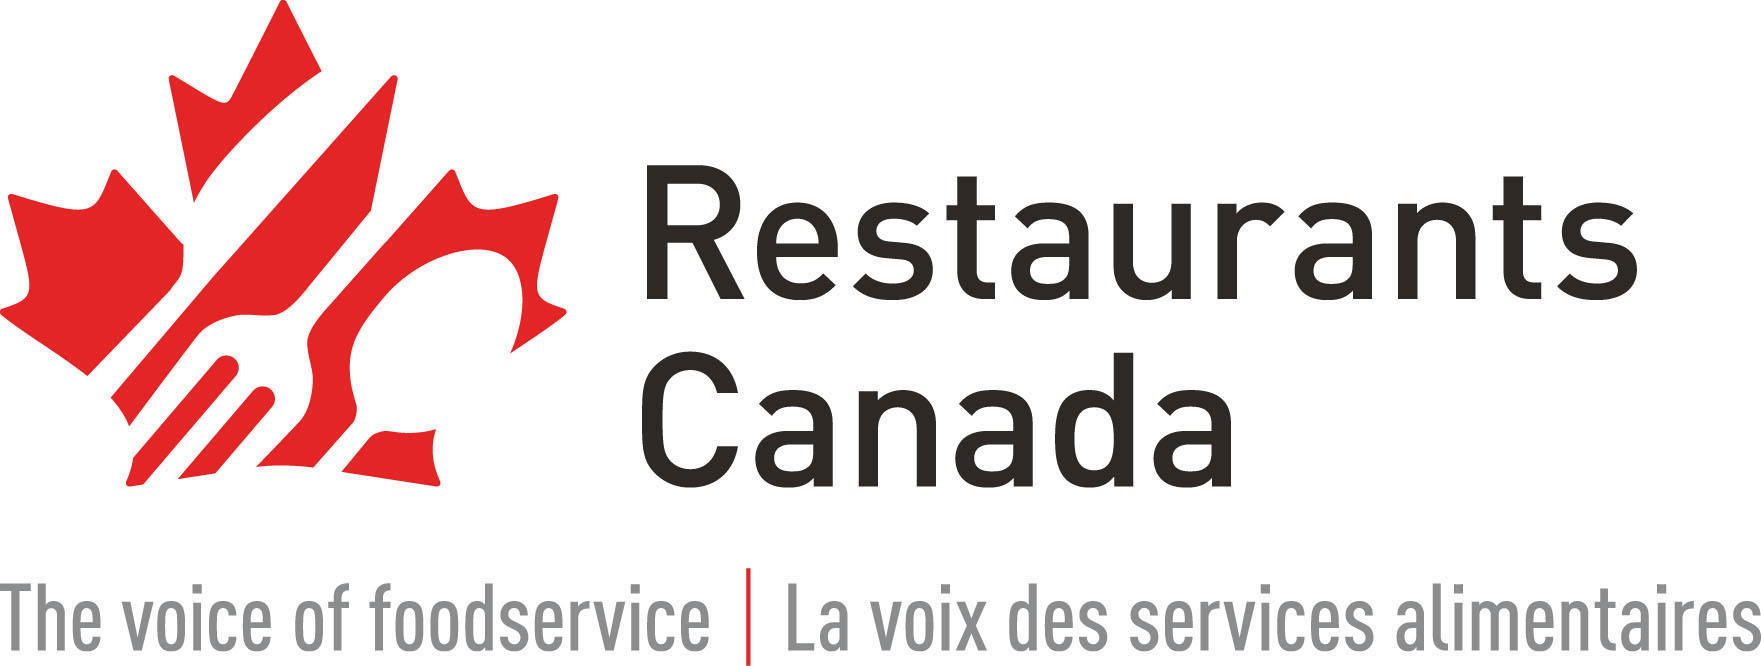 Most restaurants will need continued government support to survive Canada's recovery from COVID-19